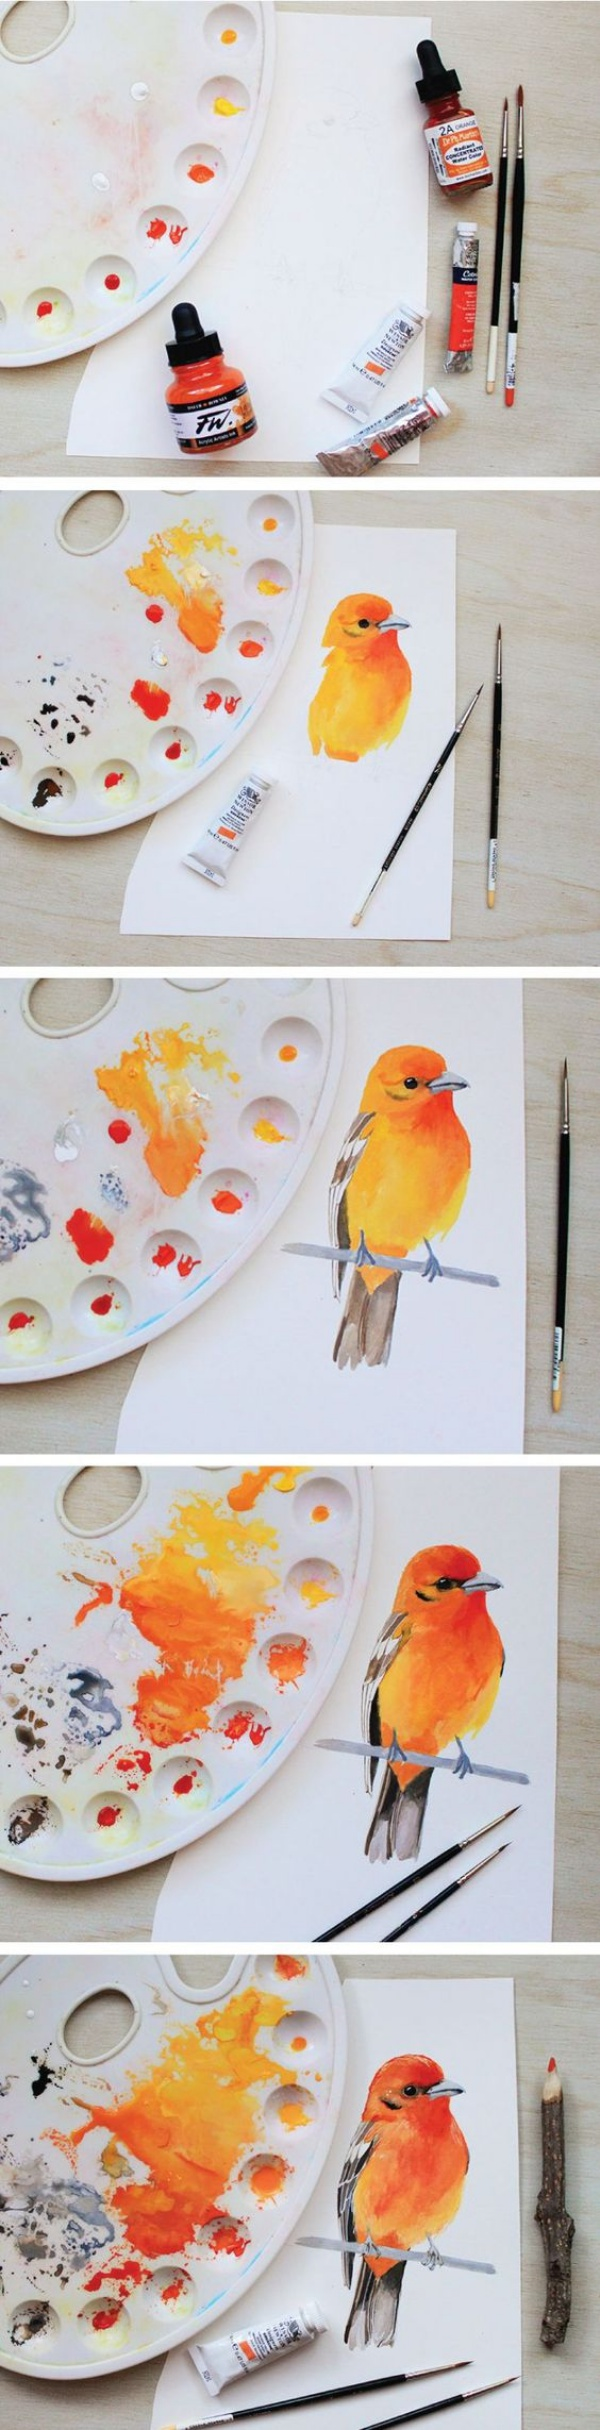 Examples-of-Watercolor-Paintings